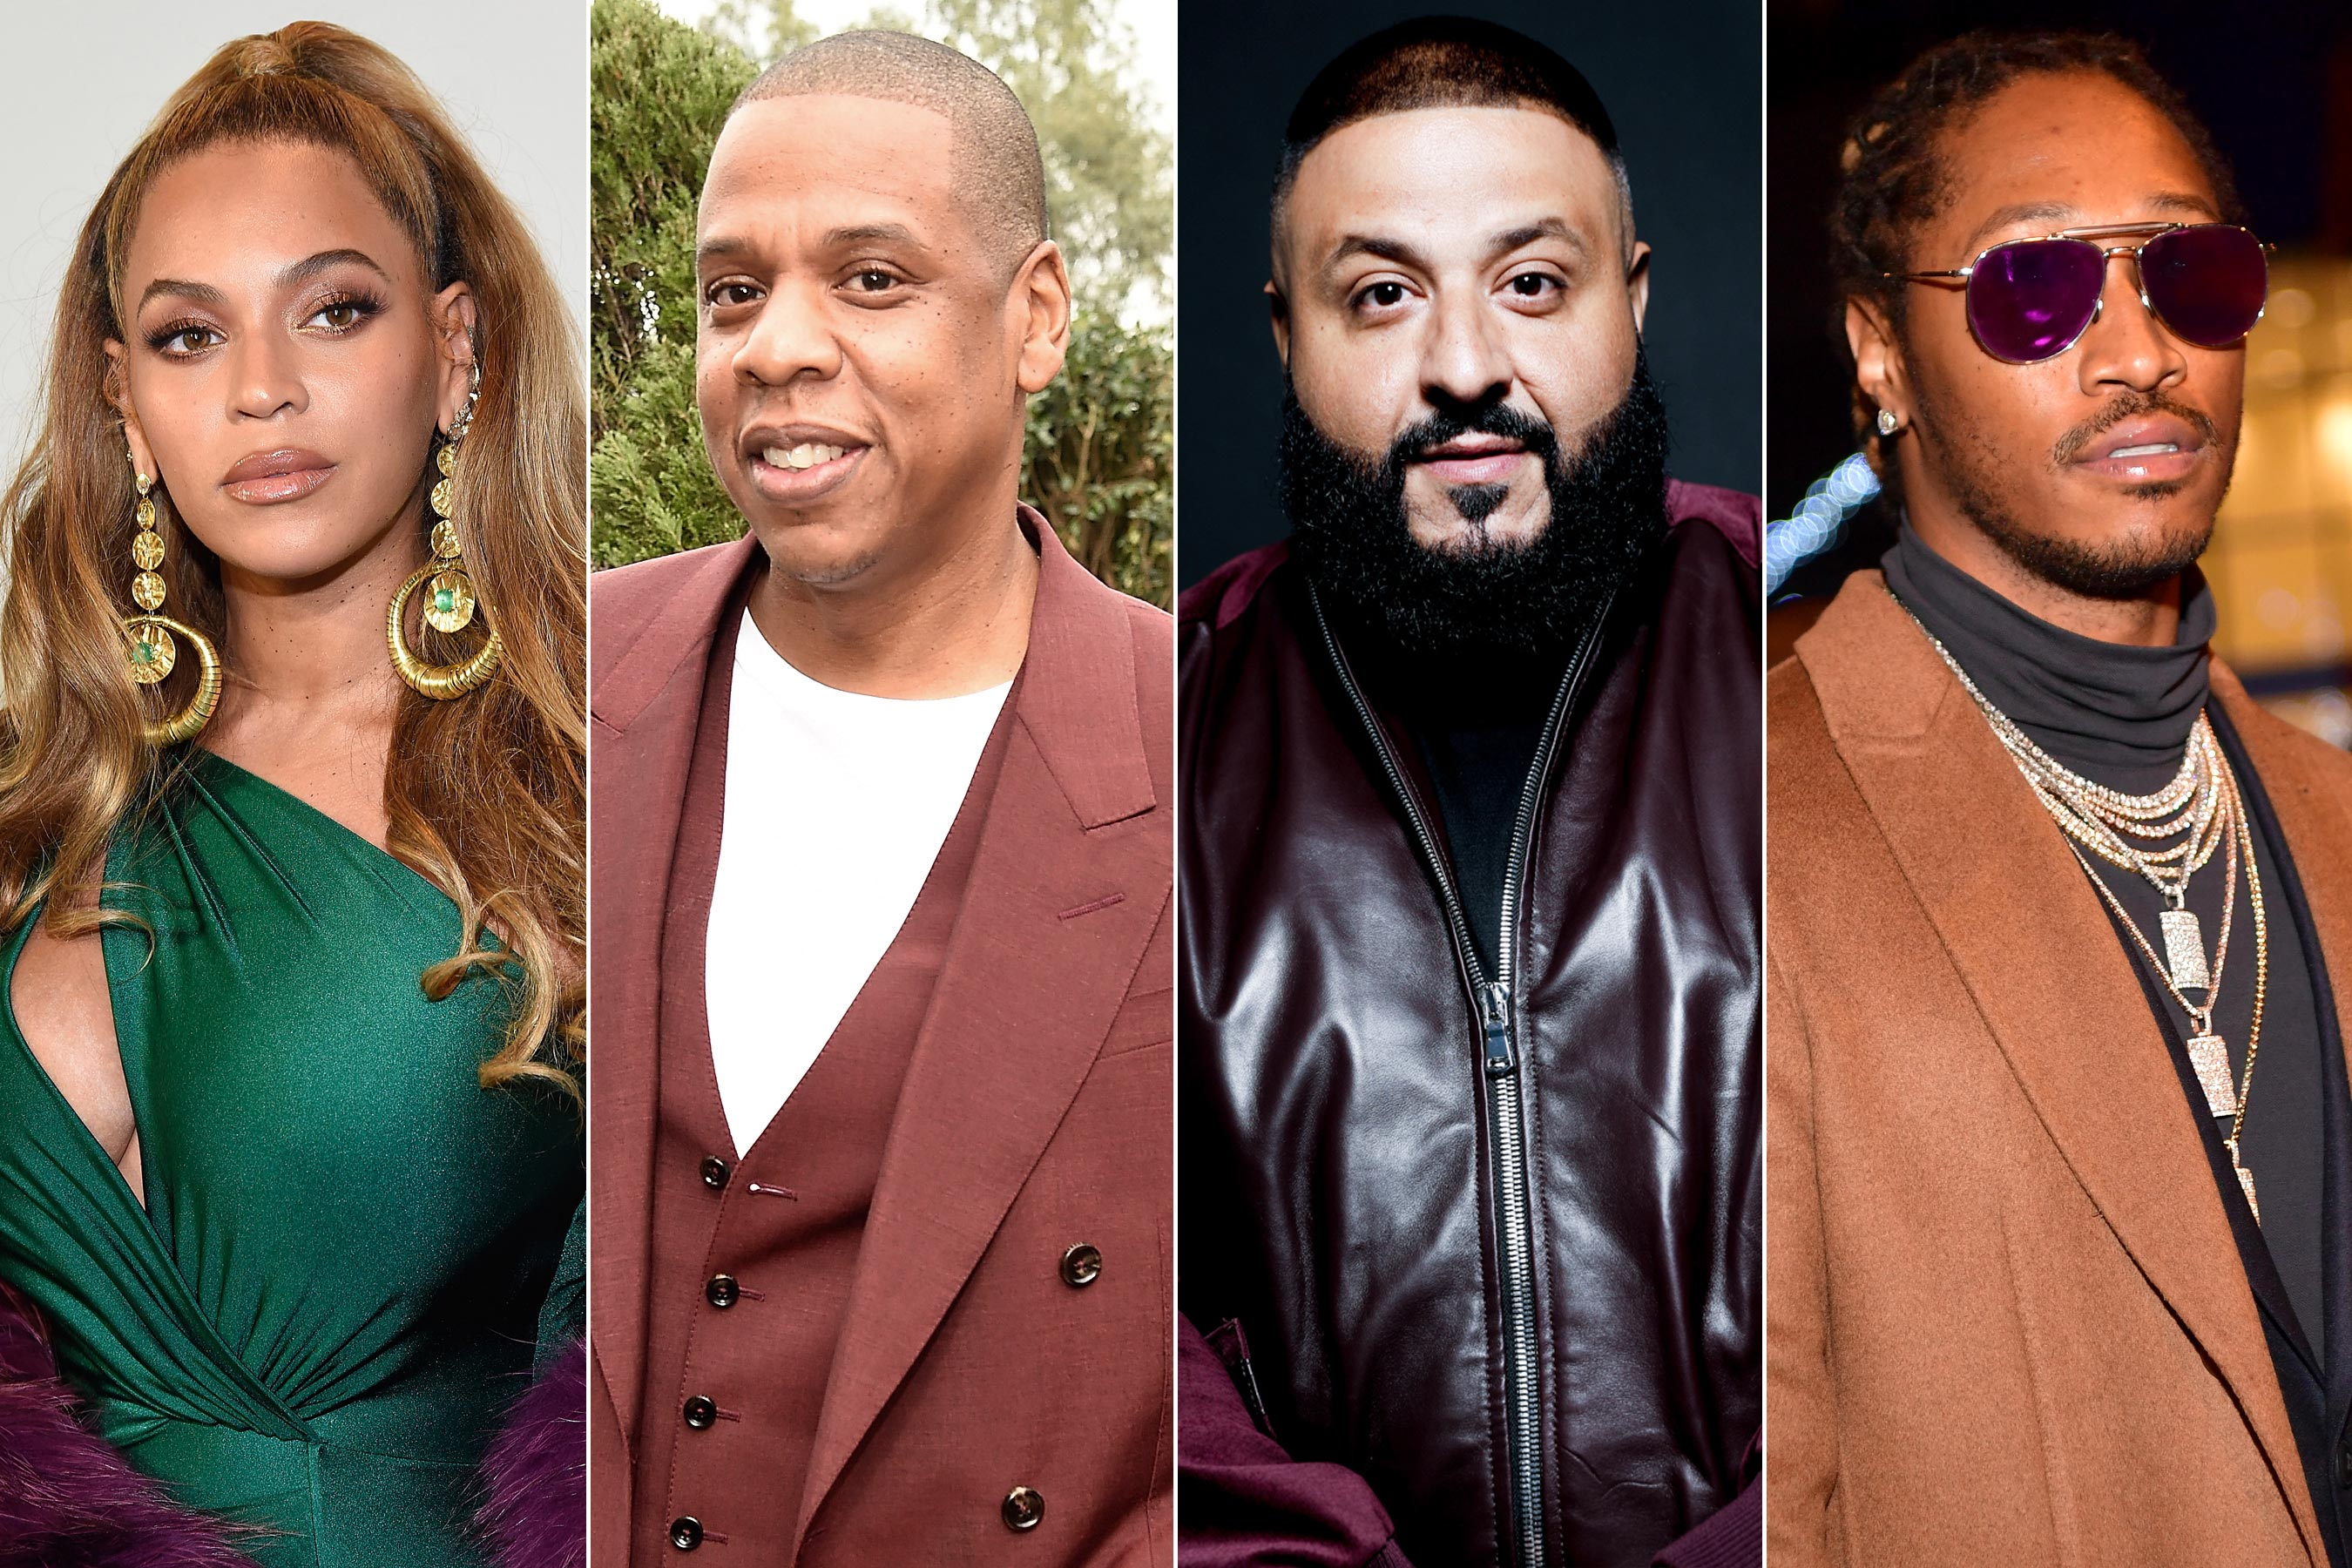 Beyoncé and JAY-Z 'Top Off' with DJ Khaled and Future in new song